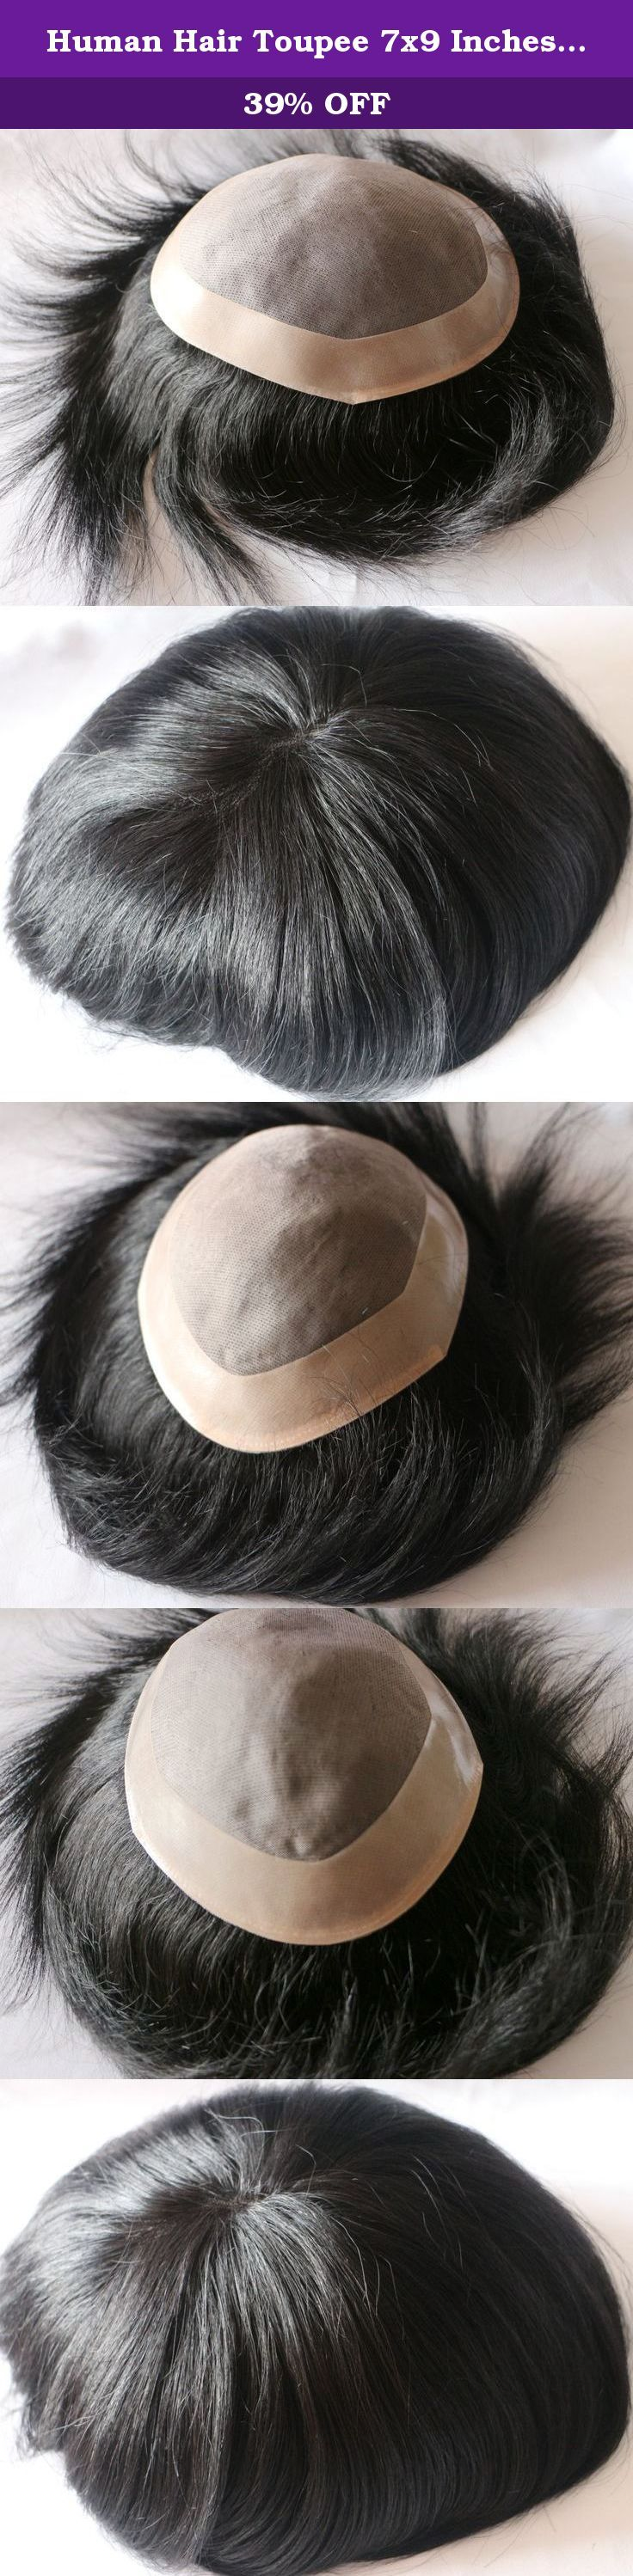 Human Hair Toupee 7x9 Inches Mono Base Men Hair Piece (color 1). 1. Color is as picture 1 2. base style is as picture 2 3. base size:7x9 4.standard shipping takes about 7 to 10 business days, expectied shipping takes about 3 to 4 business days.